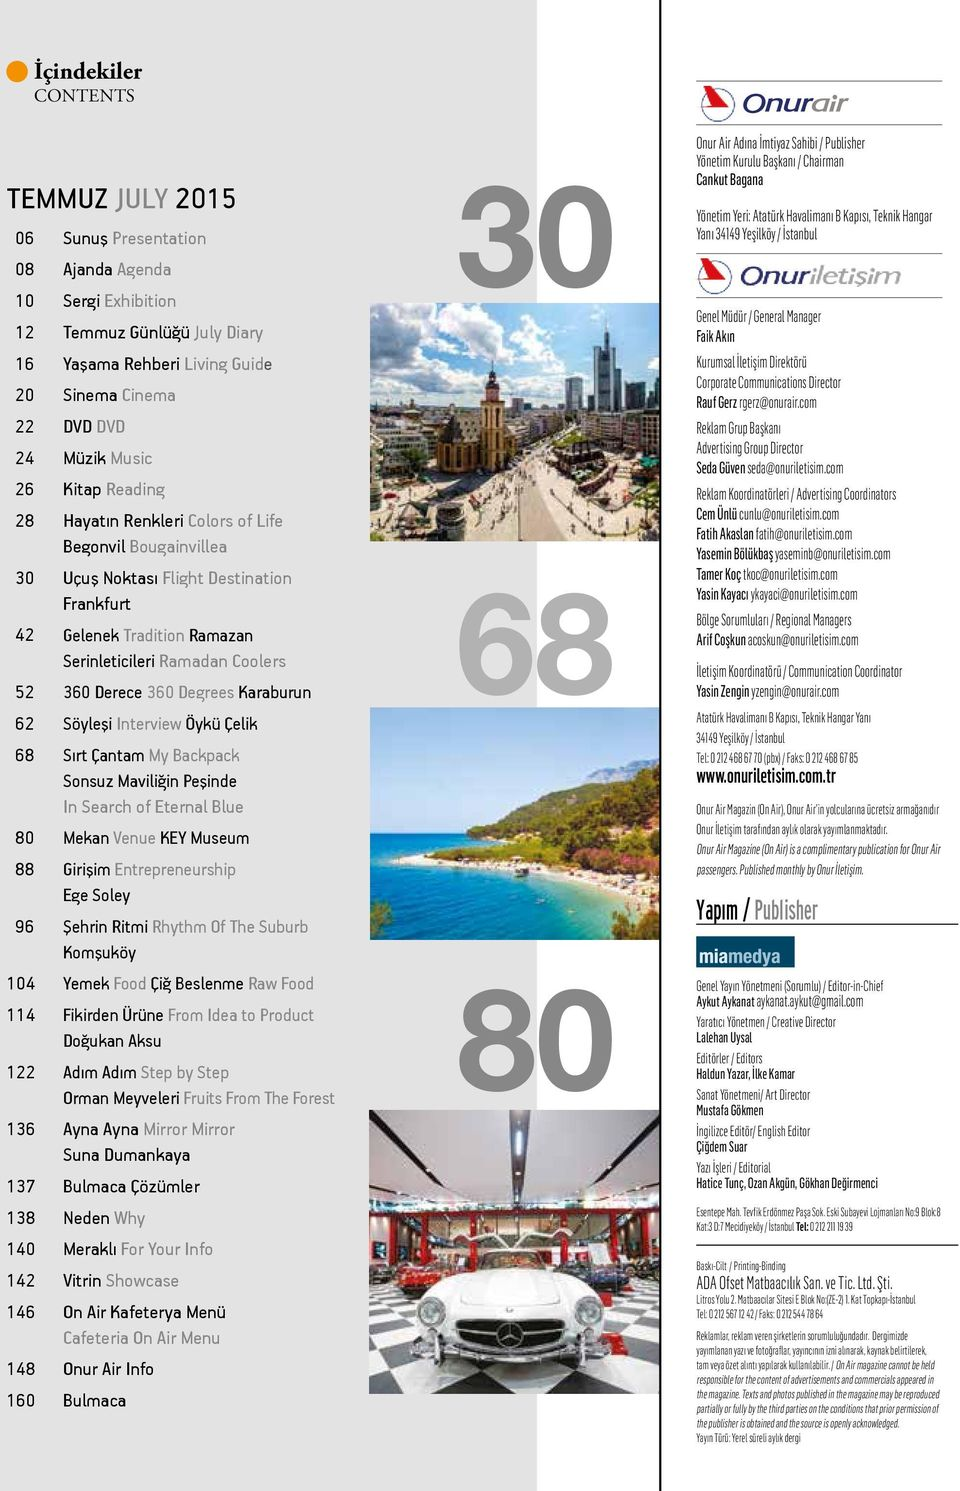 Degrees Karaburun 62 Söyleşi Interview Öykü Çelik 68 Sırt Çantam My Backpack Sonsuz Maviliğin Peşinde In Search of Eternal Blue 80 Mekan Venue KEY Museum 88 Girişim Entrepreneurship Ege Soley 96